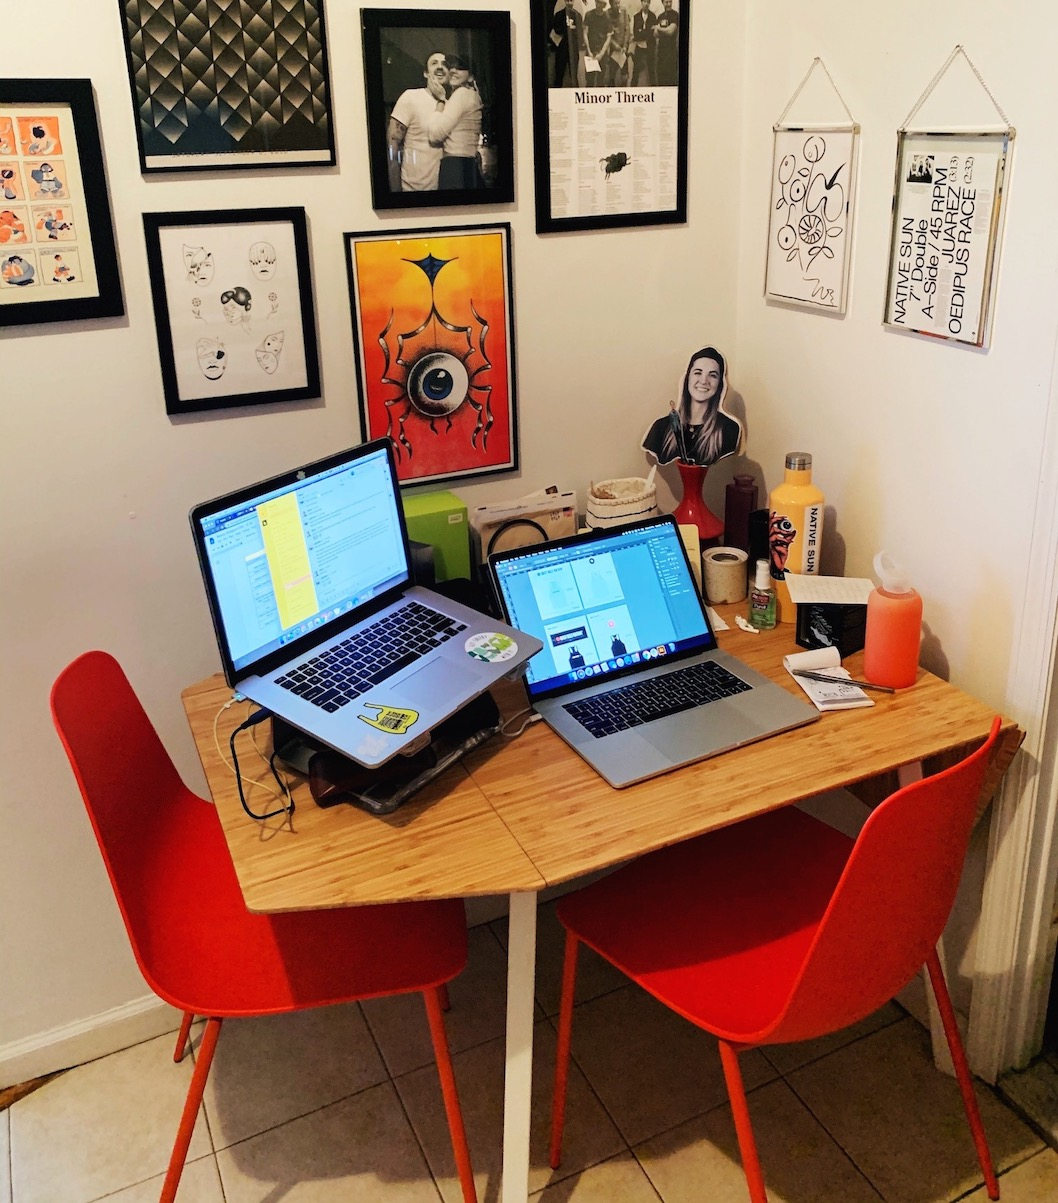 Bre's work station